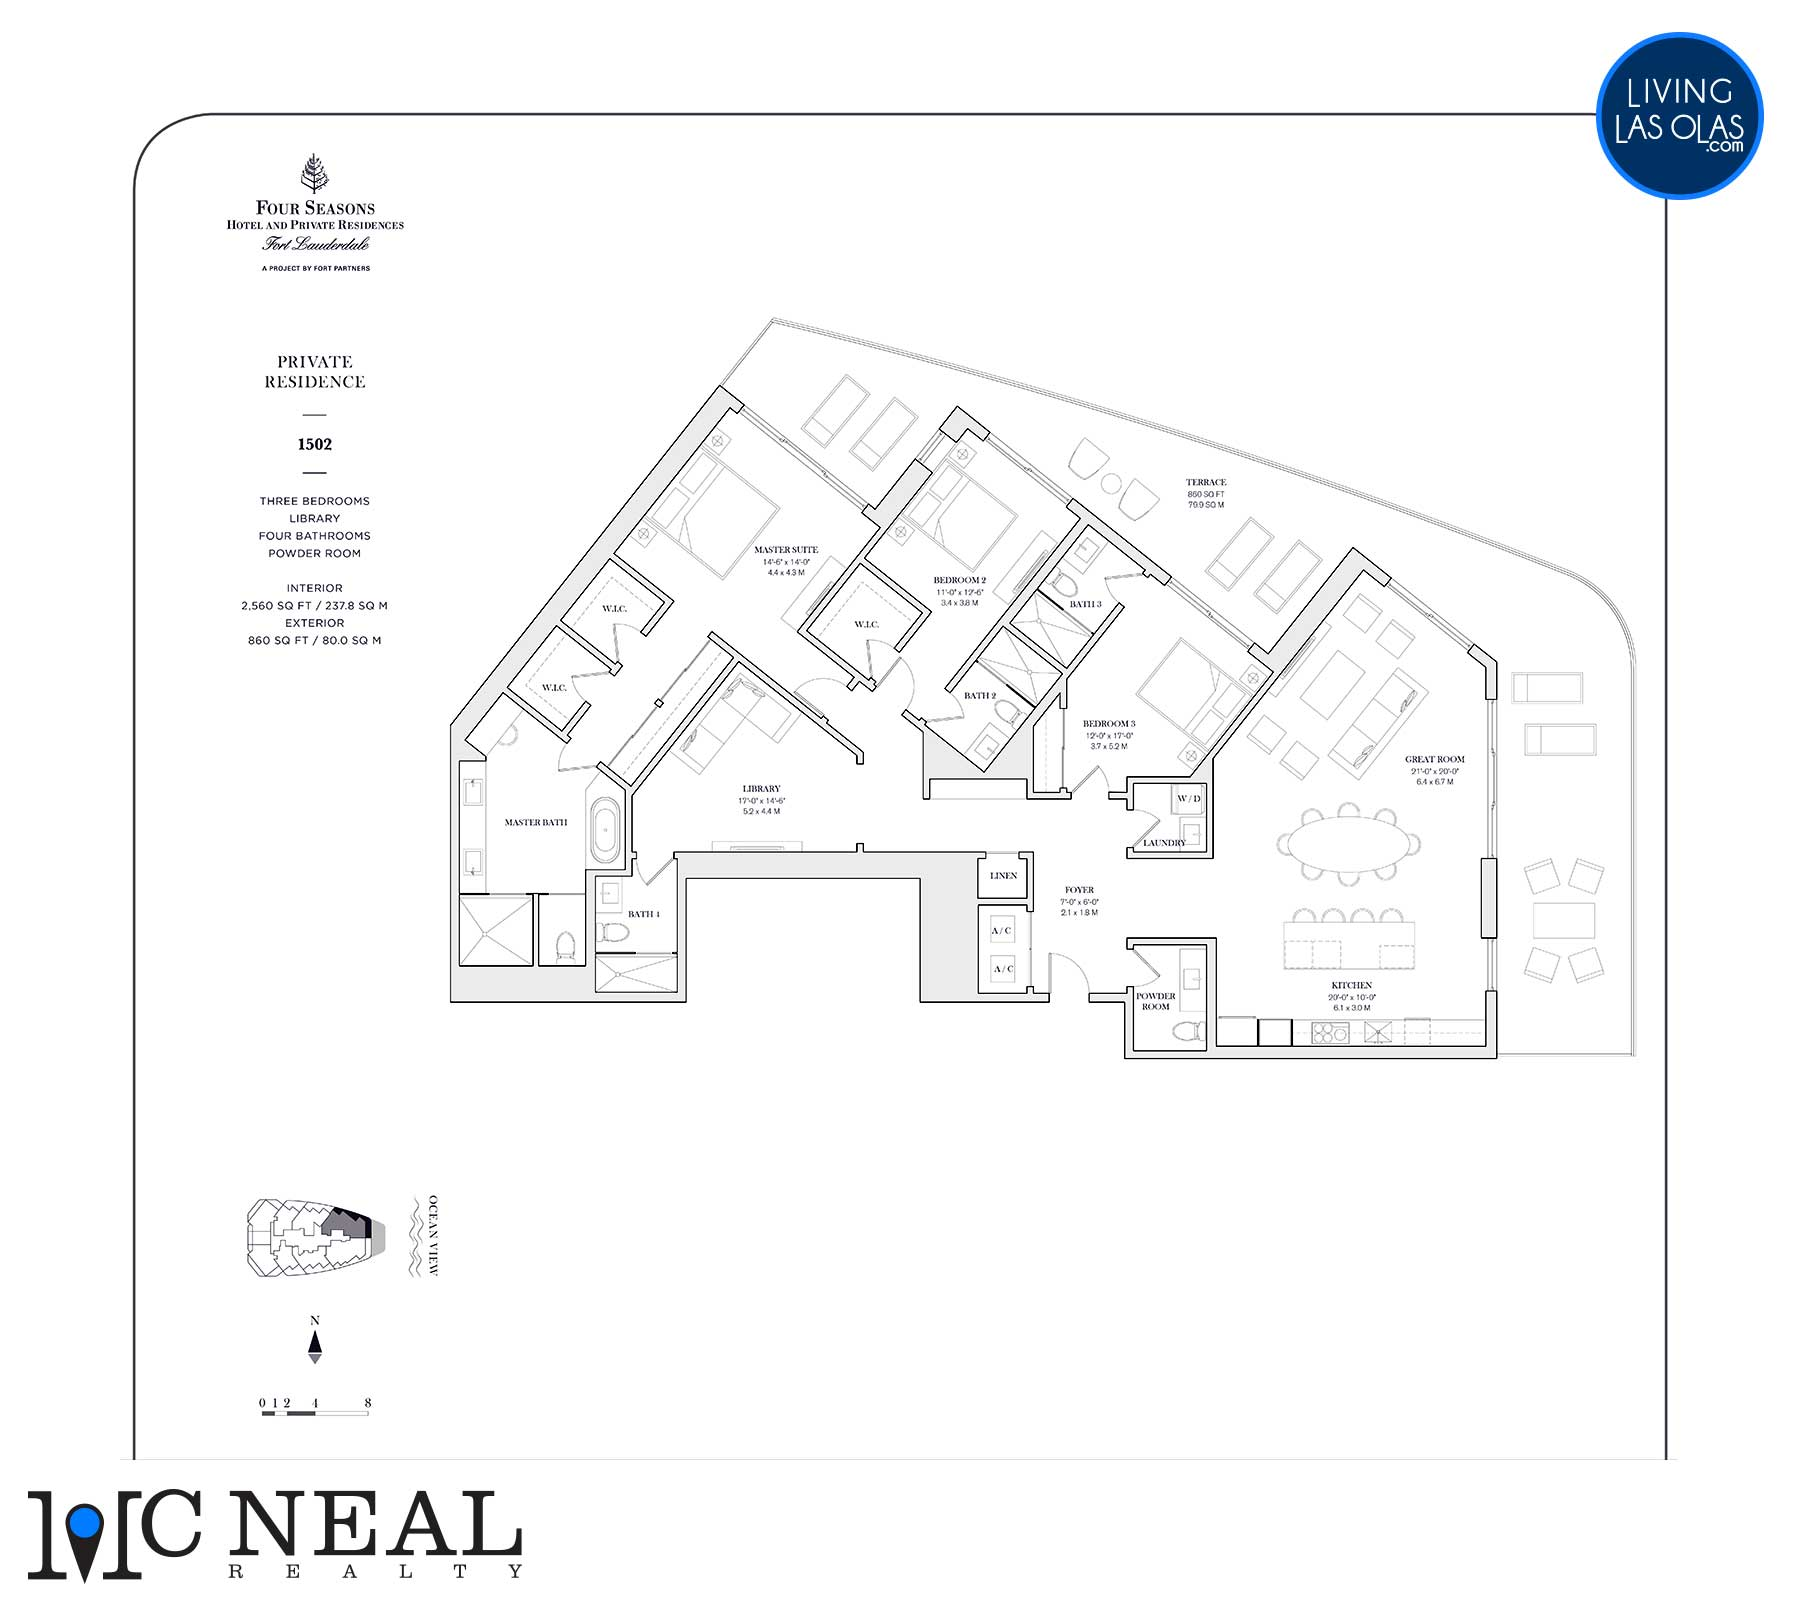 Four Seasons Private Residences Floor Plan 1502